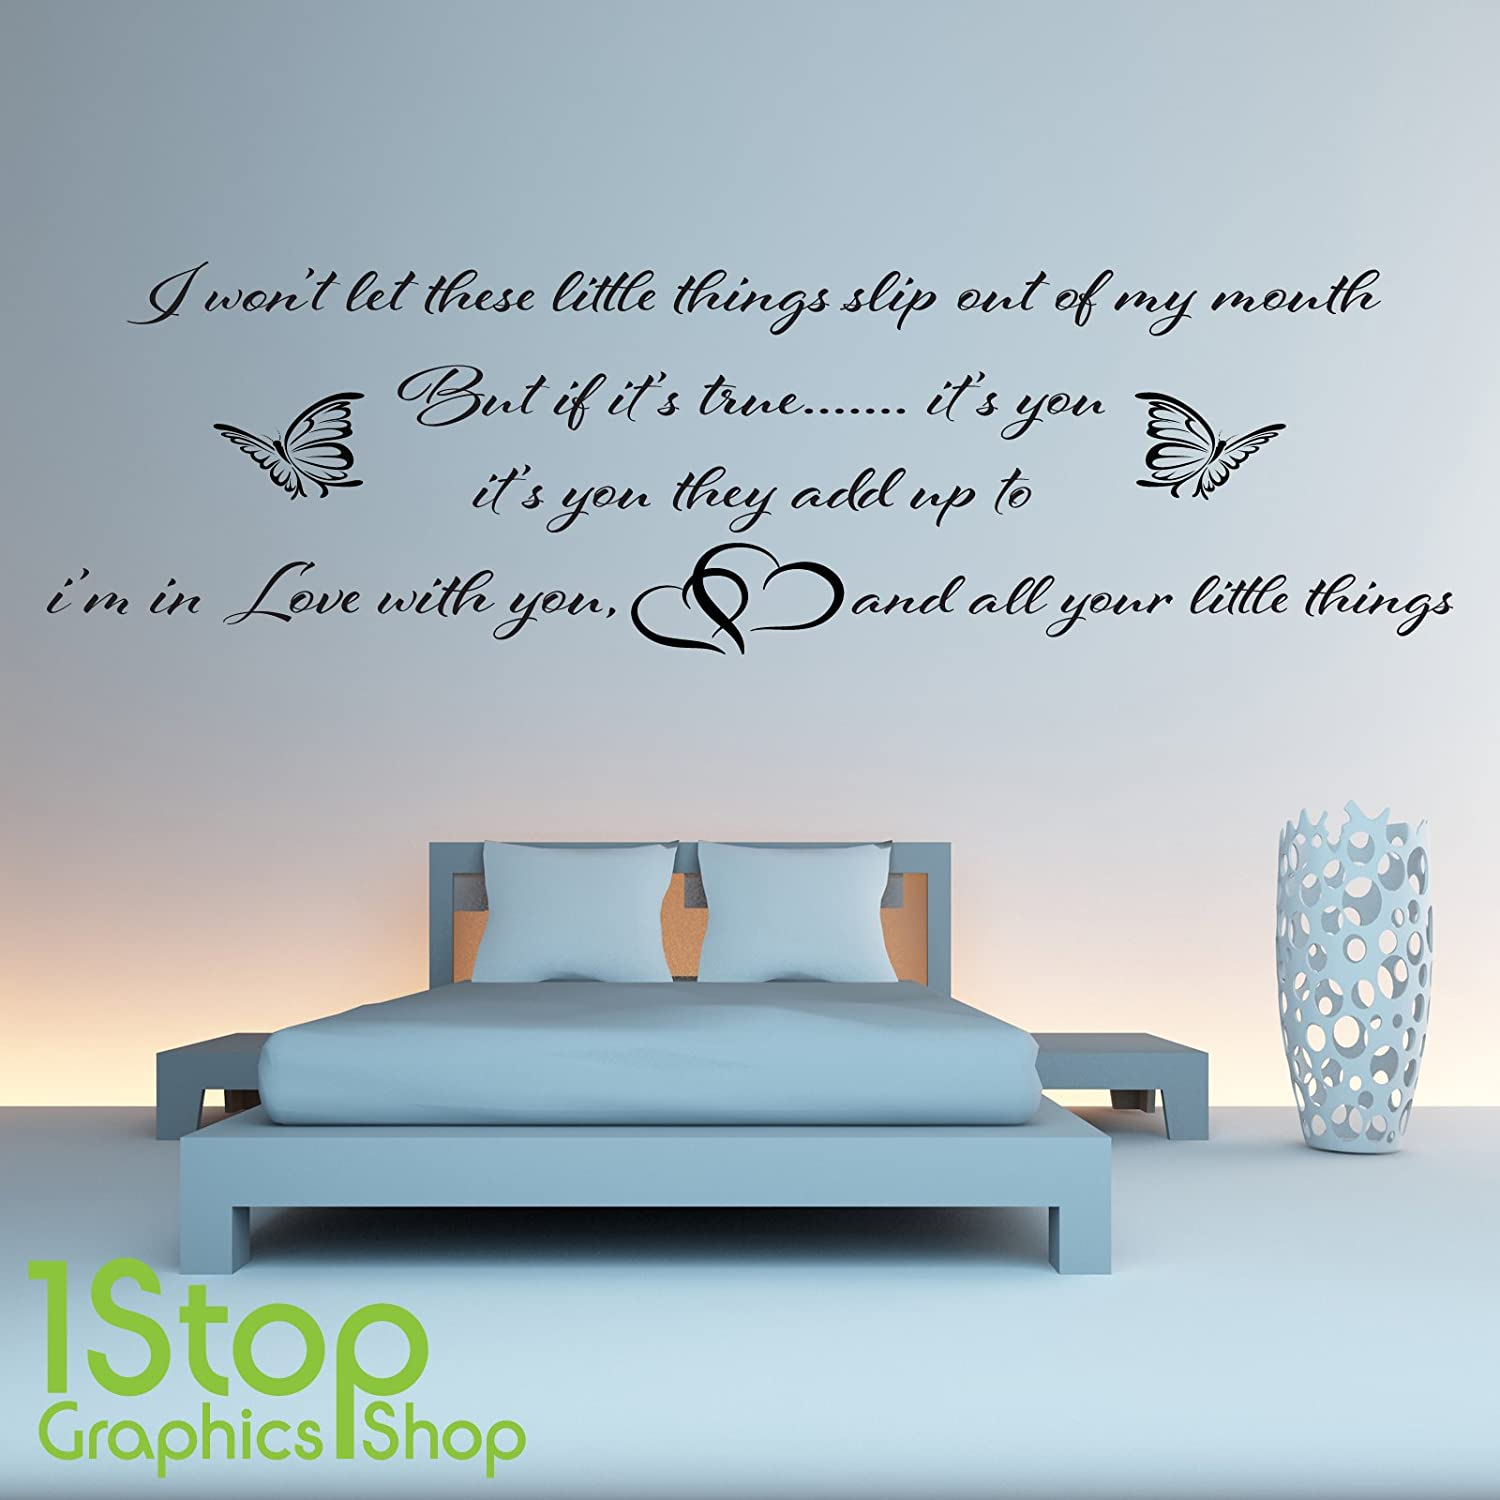 Wall Sticker Quotes For Bedrooms - [hdwallpaperblog.com]